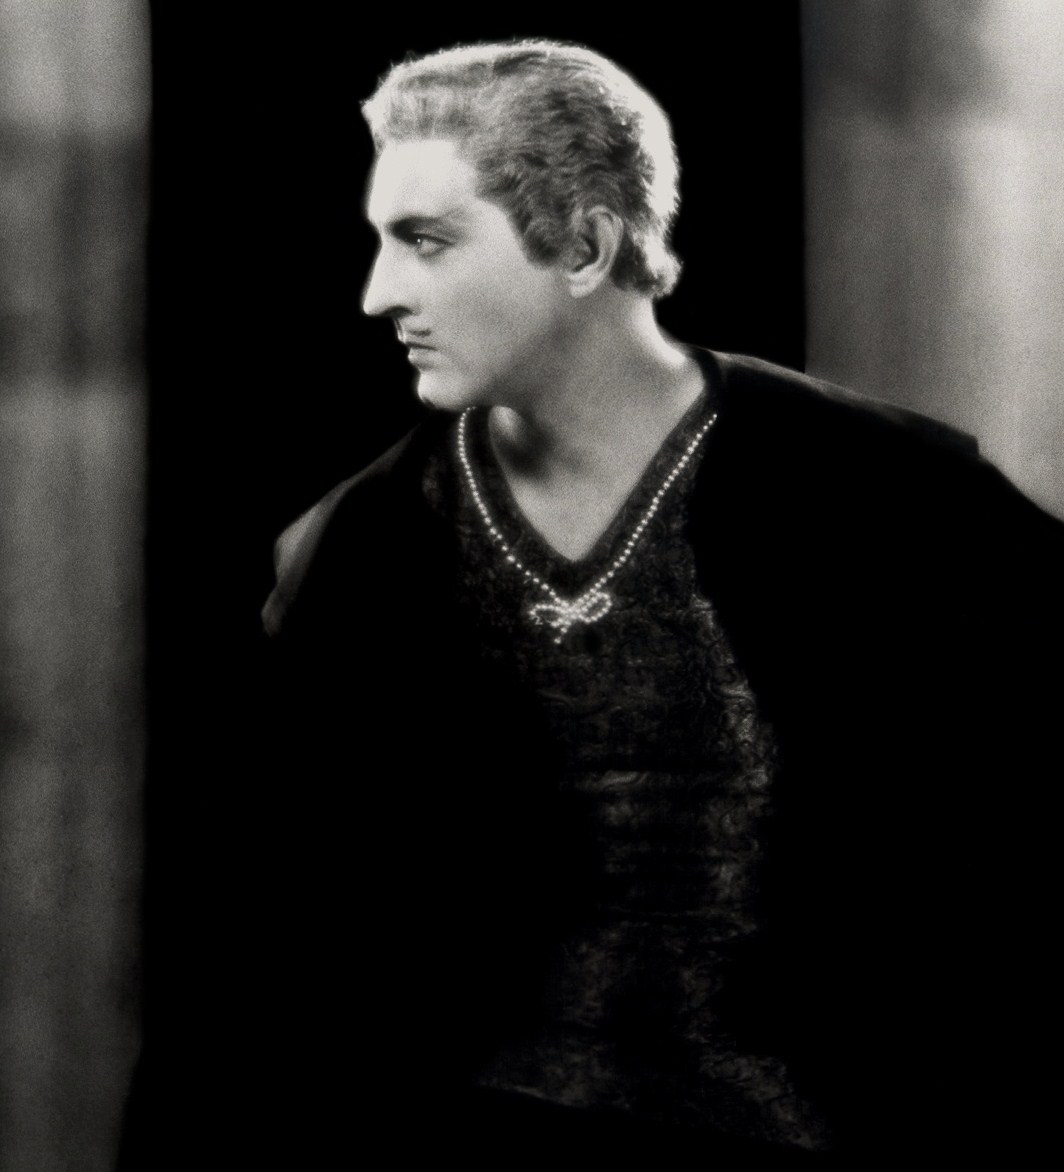 John Barrymore surely had a very back [u] sound